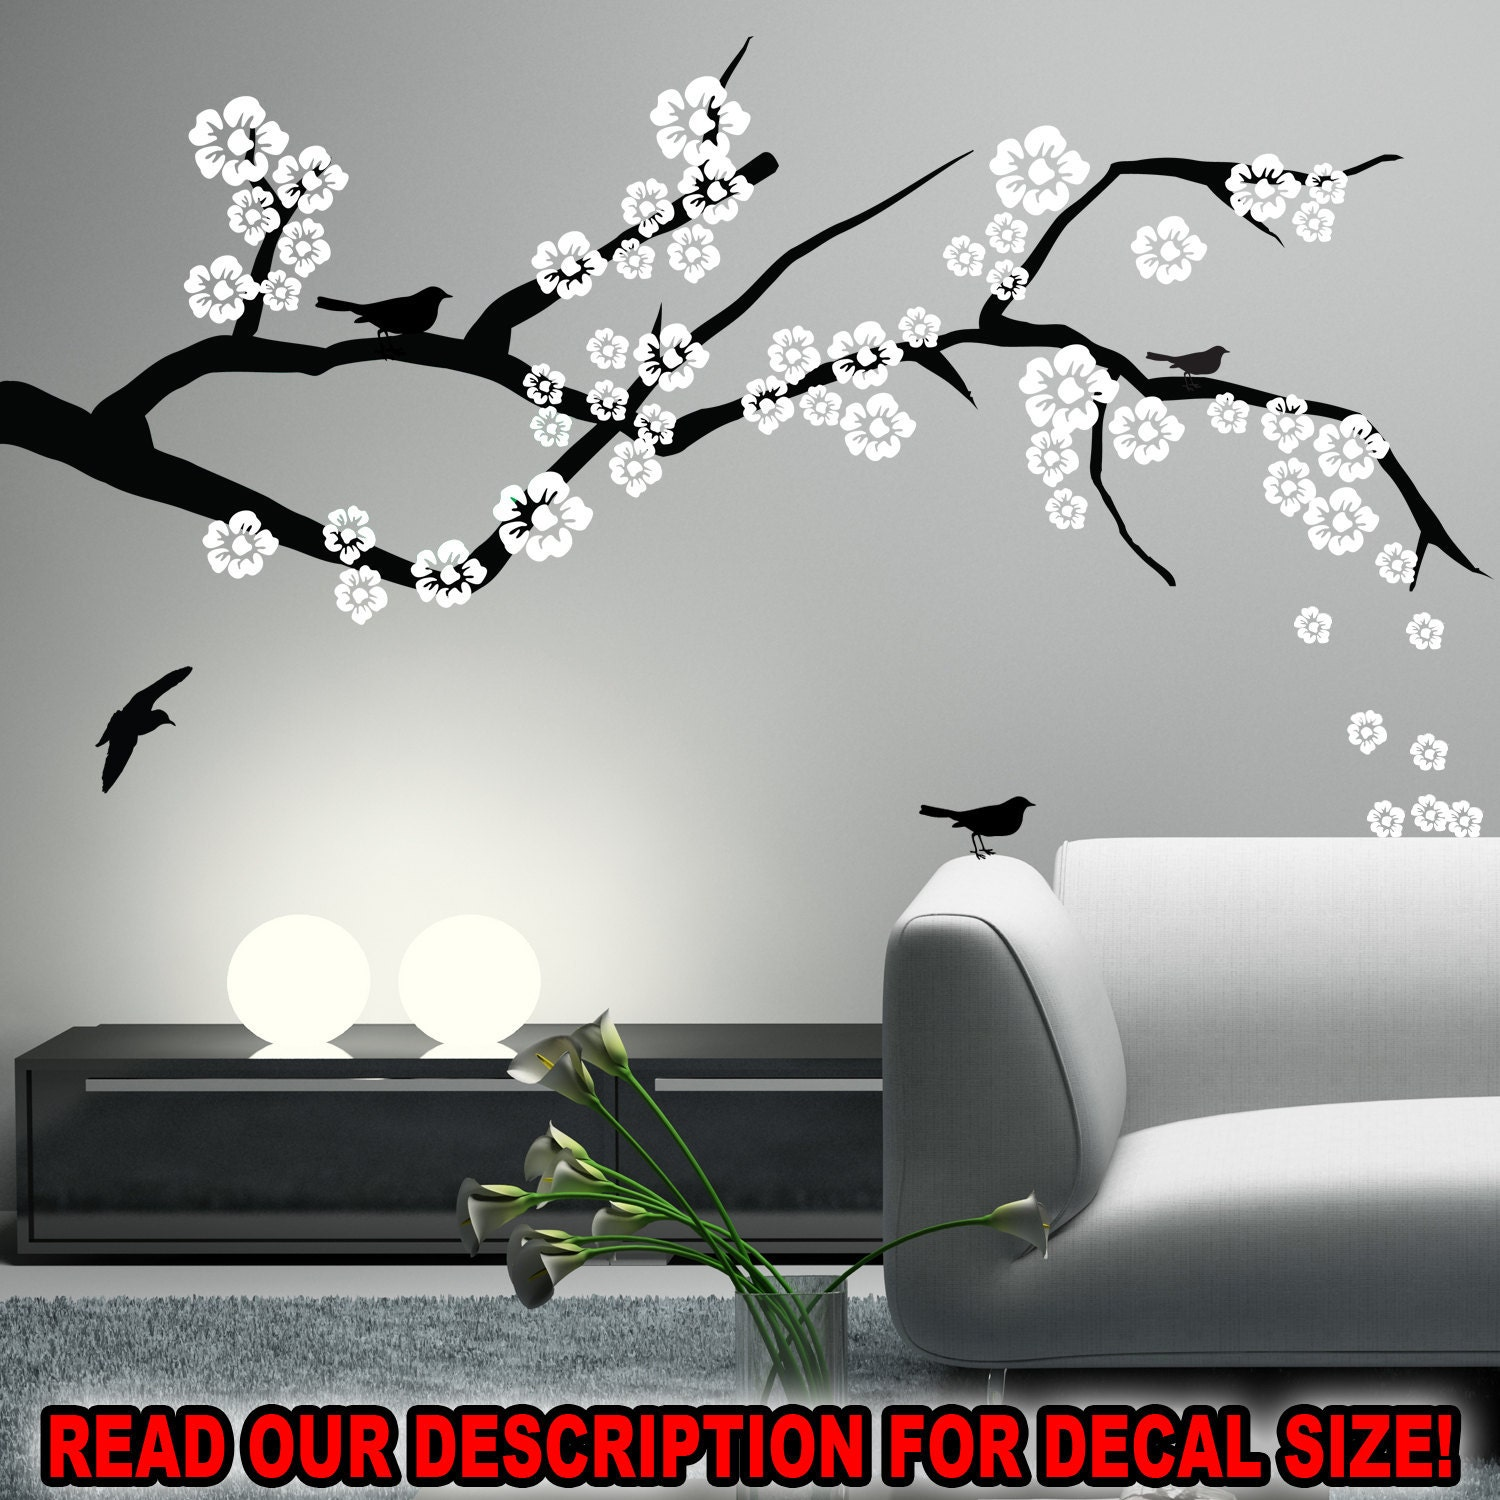 Wall Art Decals Cherry Blossom : Cherry blossom branch wall decal nursery living by happywallz